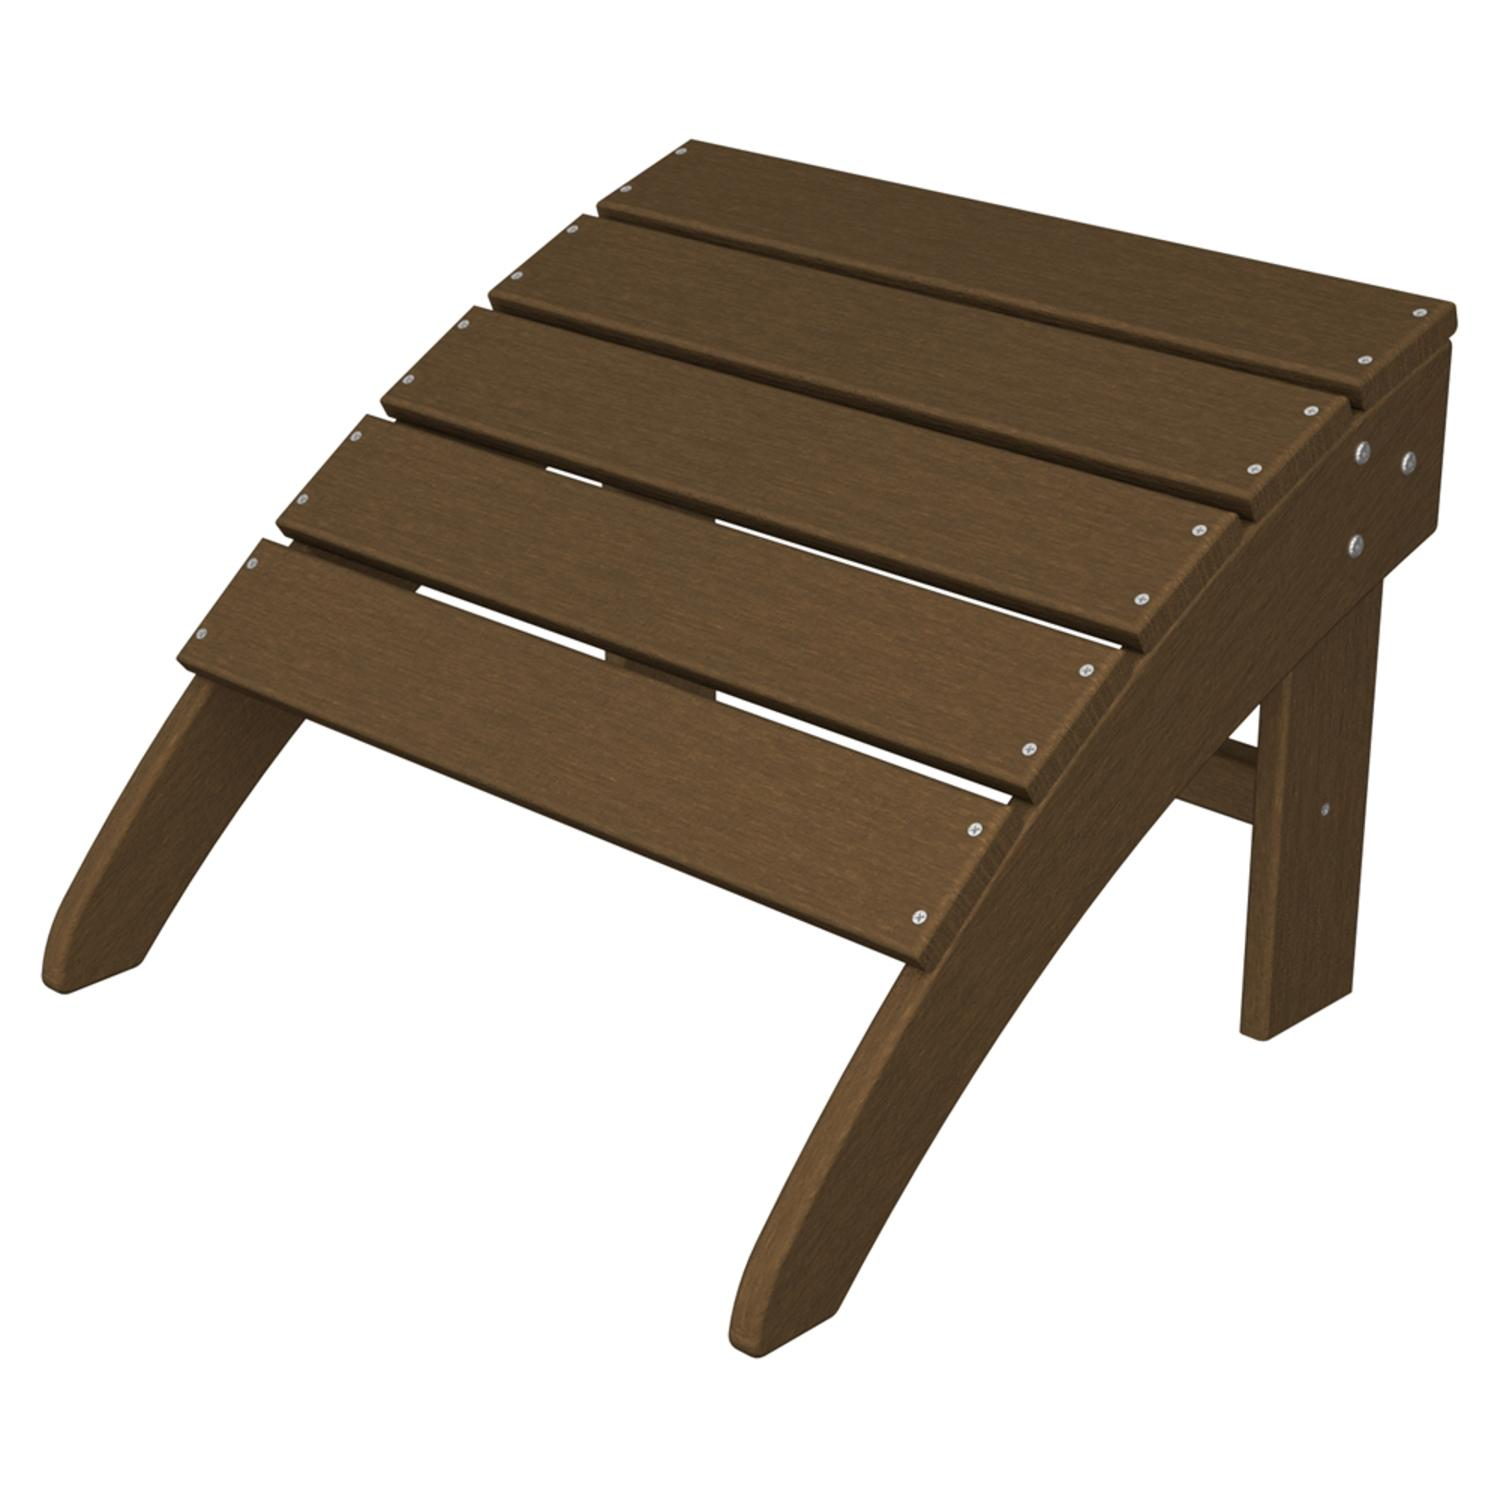 "19"" Recycled Venice Beach Outdoor Patio Adirondack Ottoman - Raw Sienna"